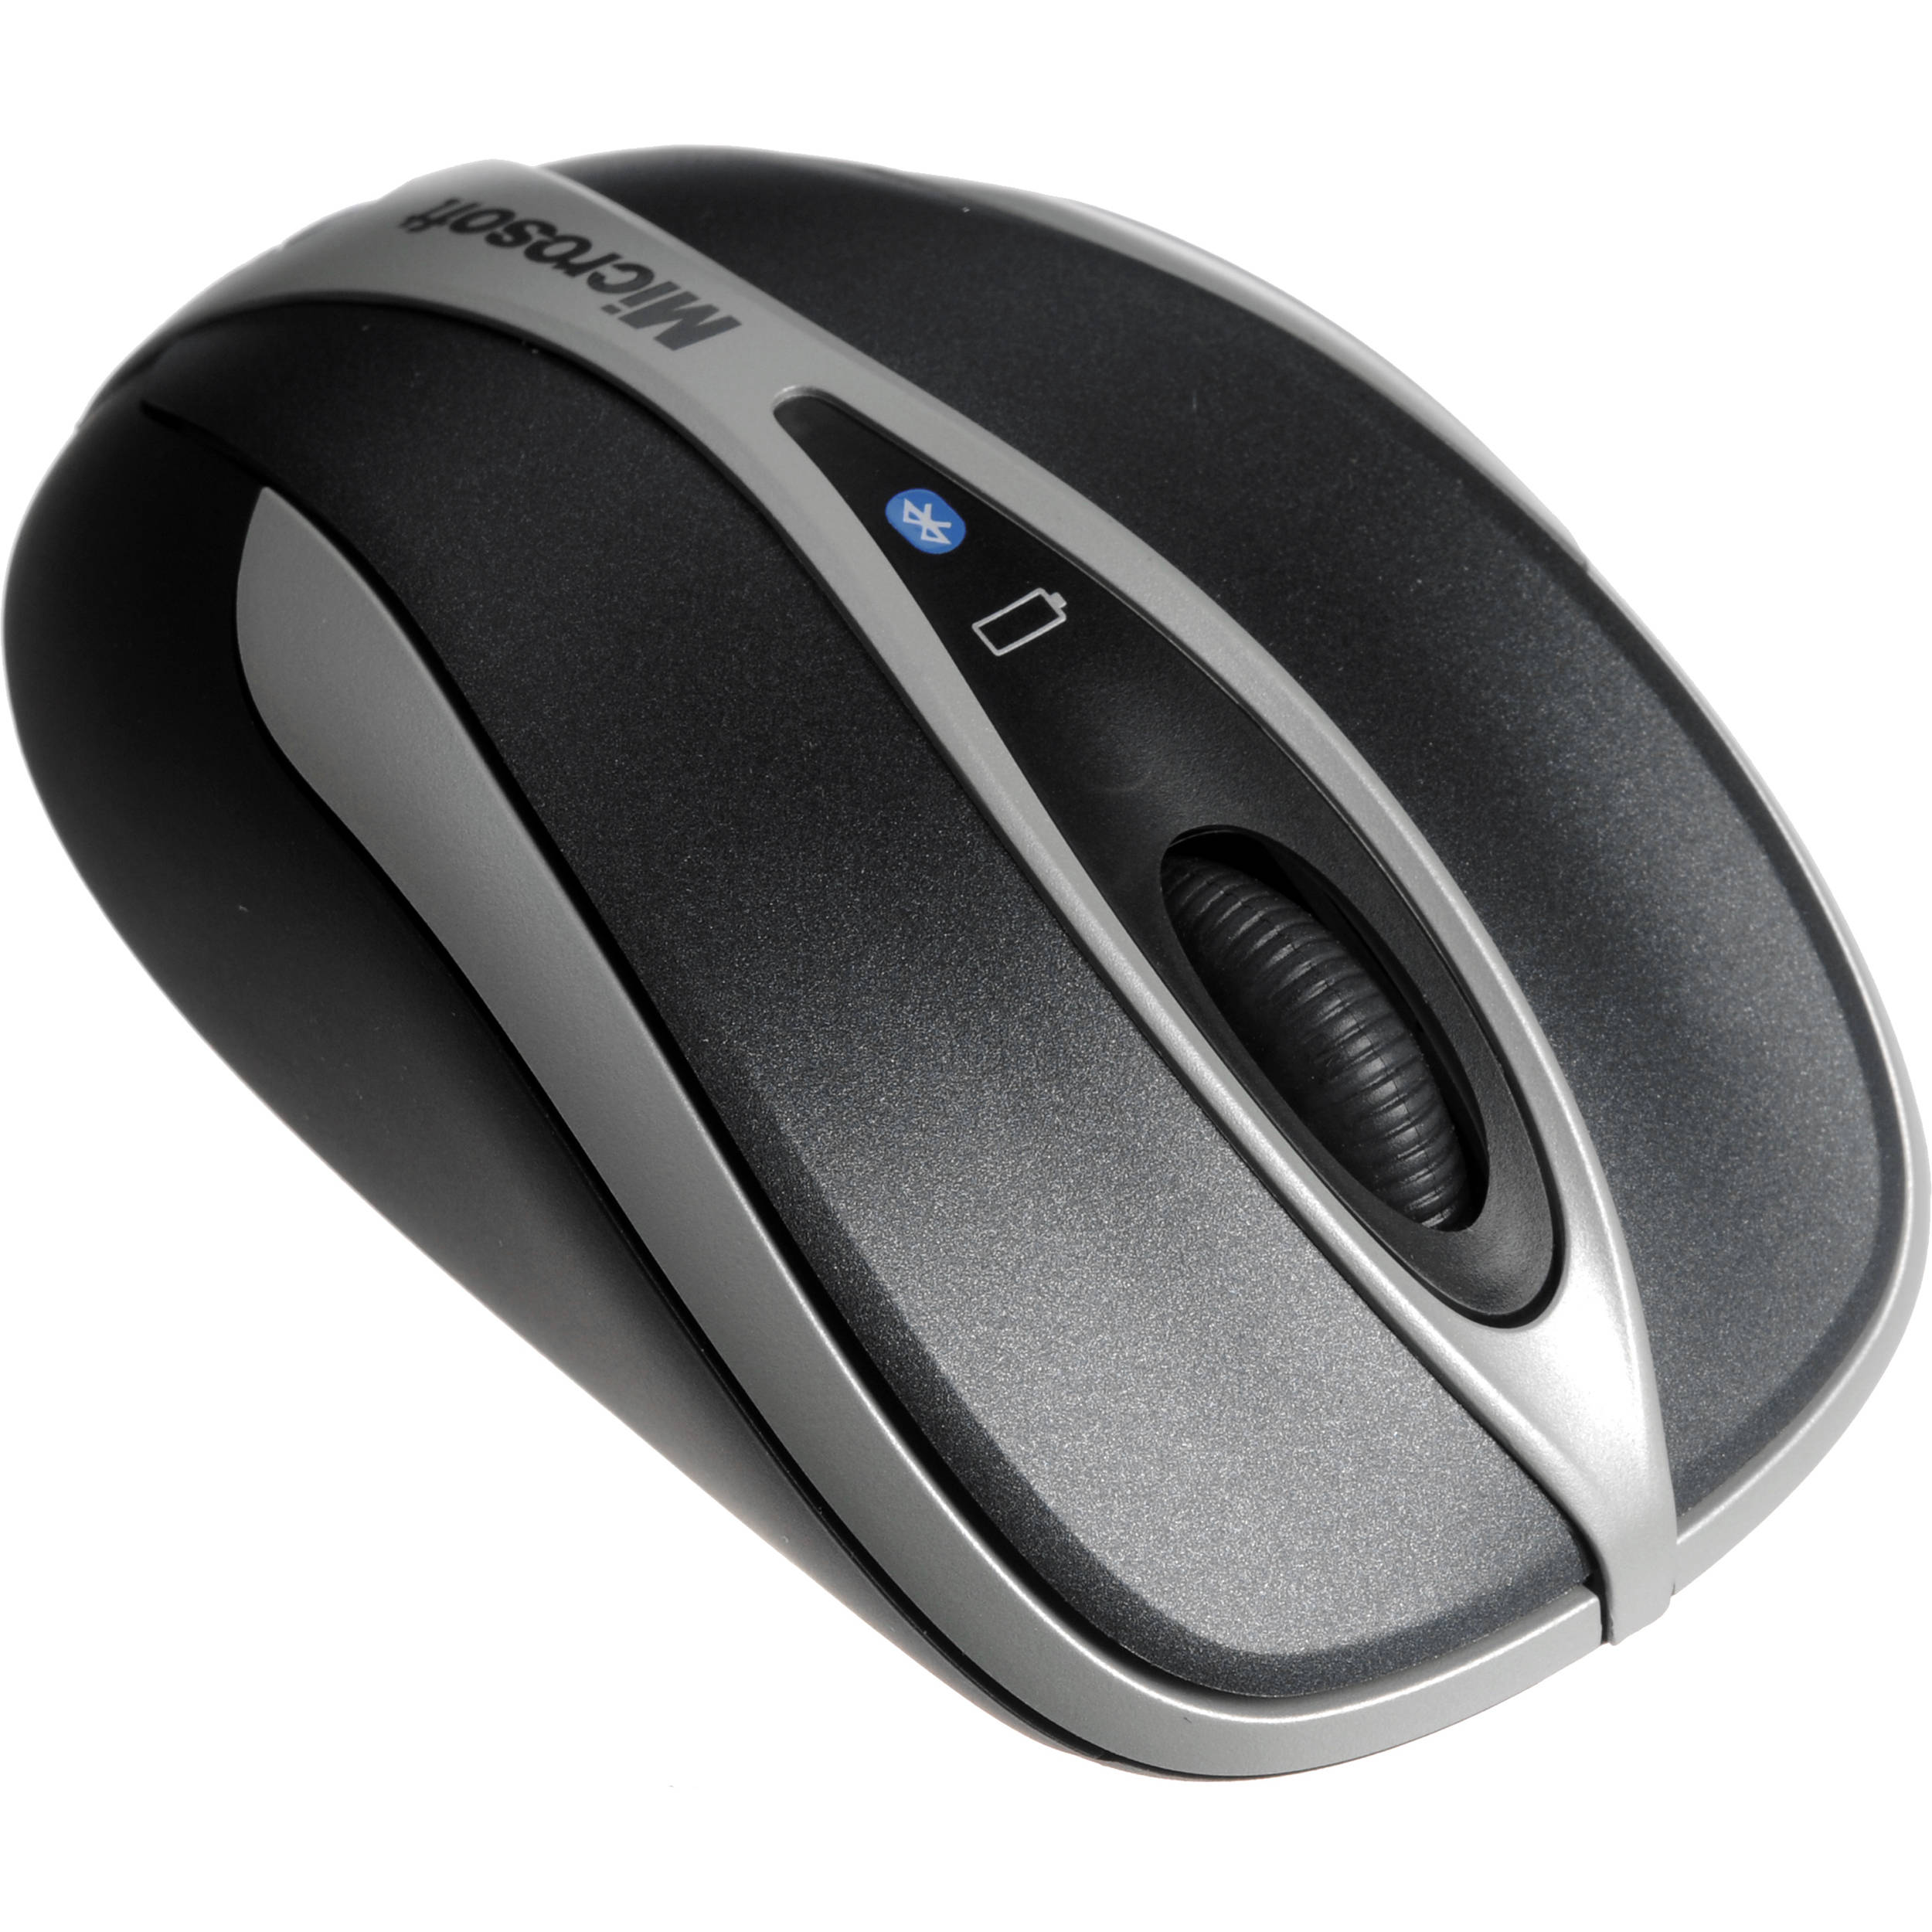 microsoft wireless mouse 5000 instructions